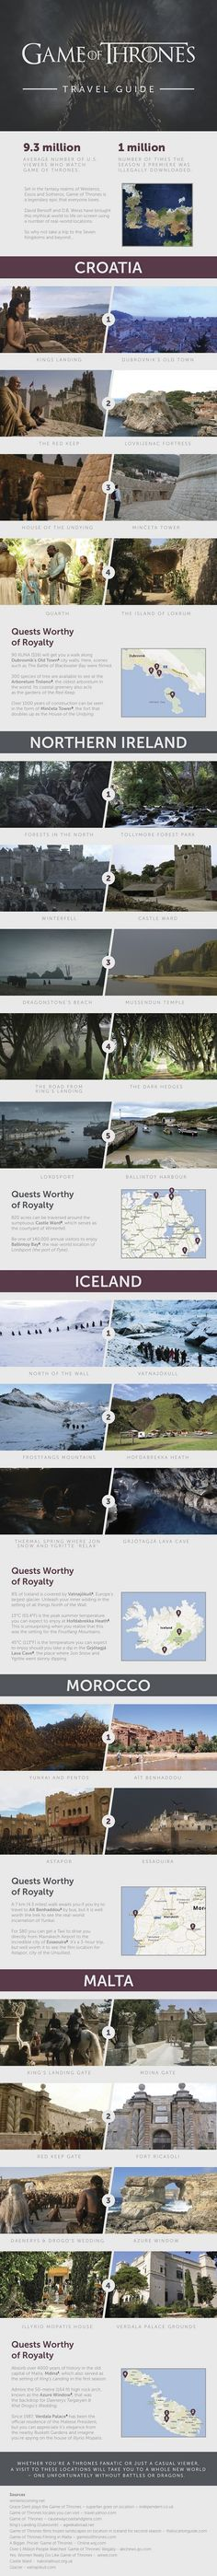 Game of Thrones: Travel Guide